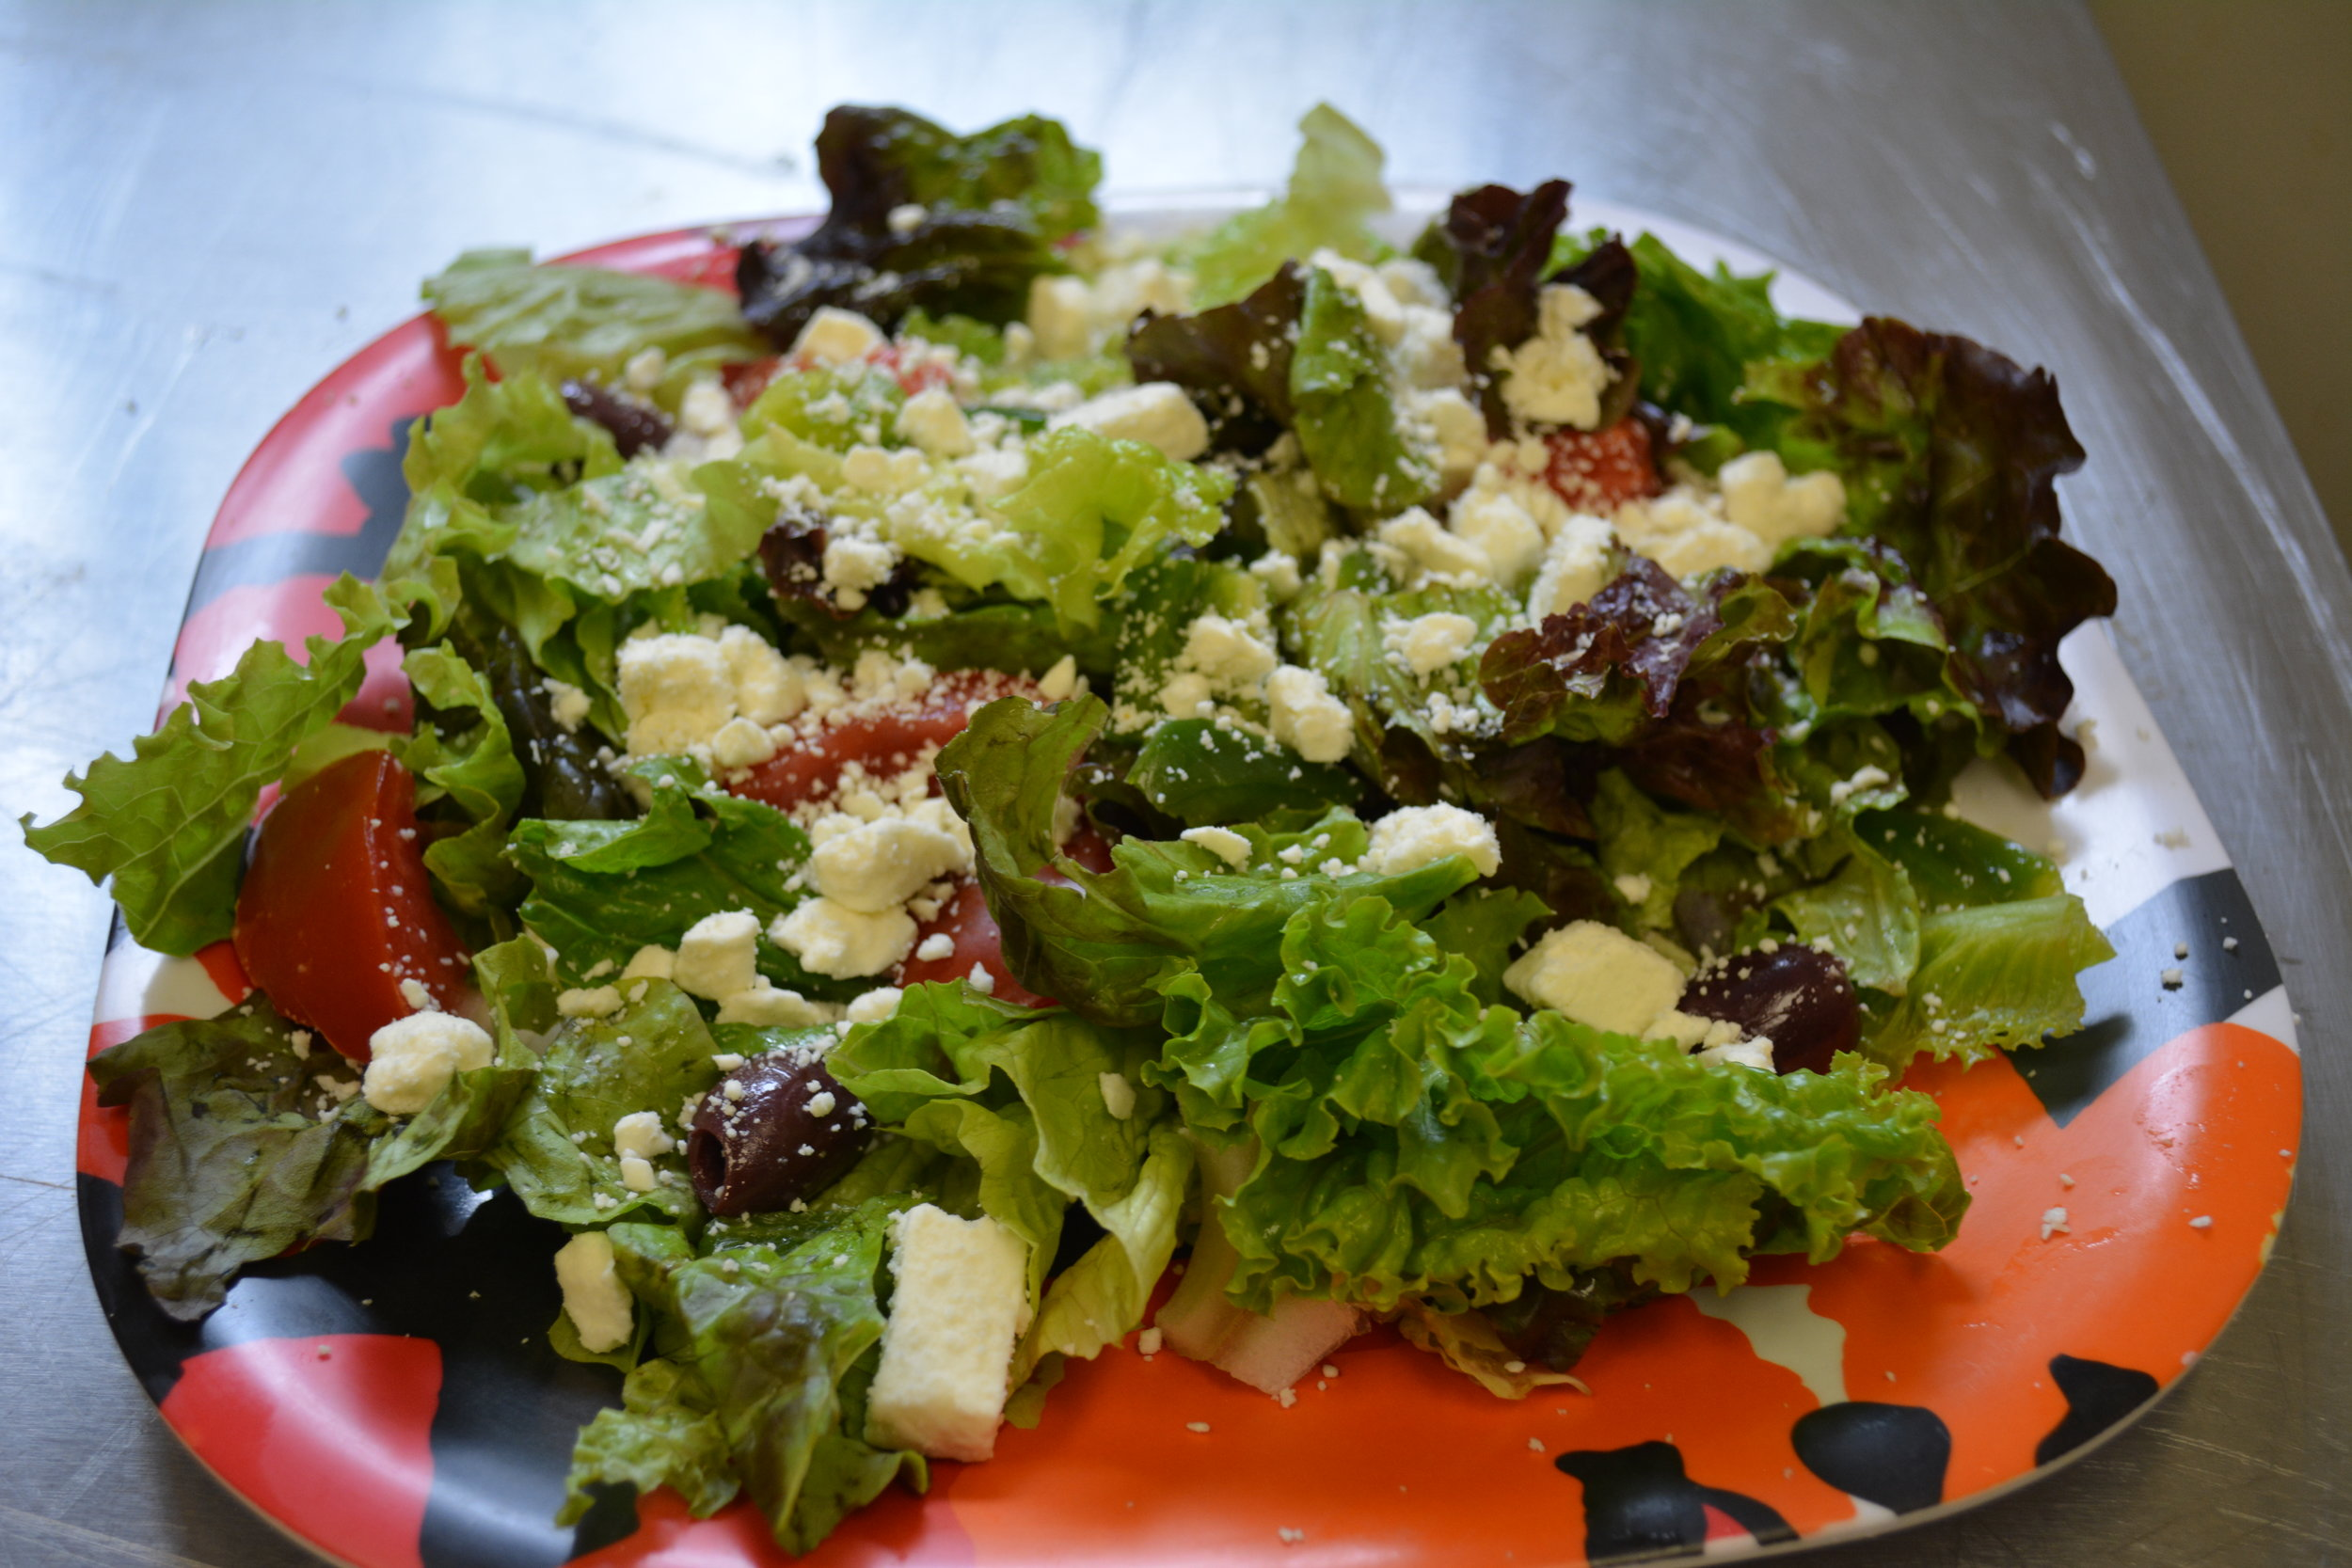 Greek - Fresh lettuce, black olives, feta cheese, onions and green peppers,served with homemade greek dressing